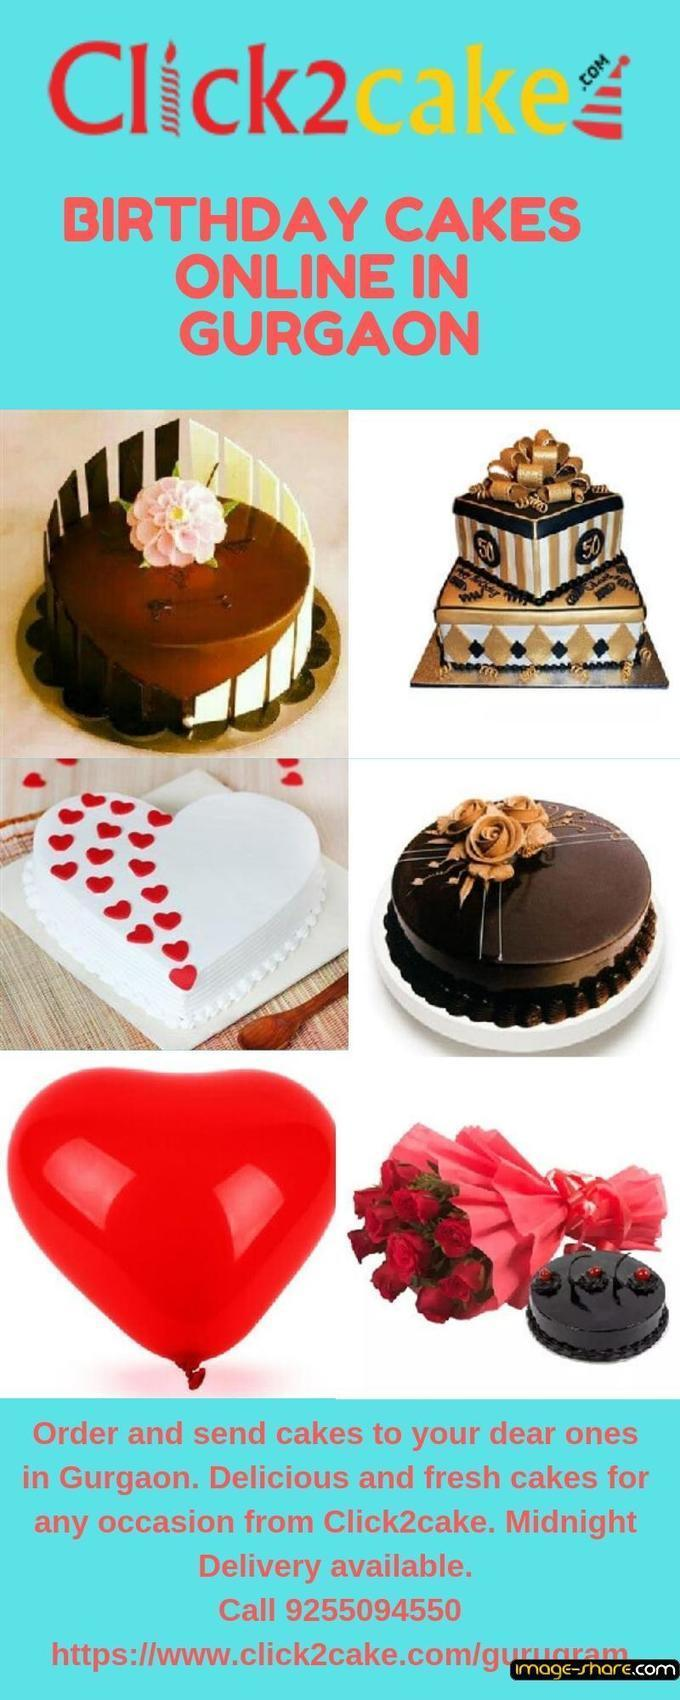 Birthday Cakes Online In Gurgaon